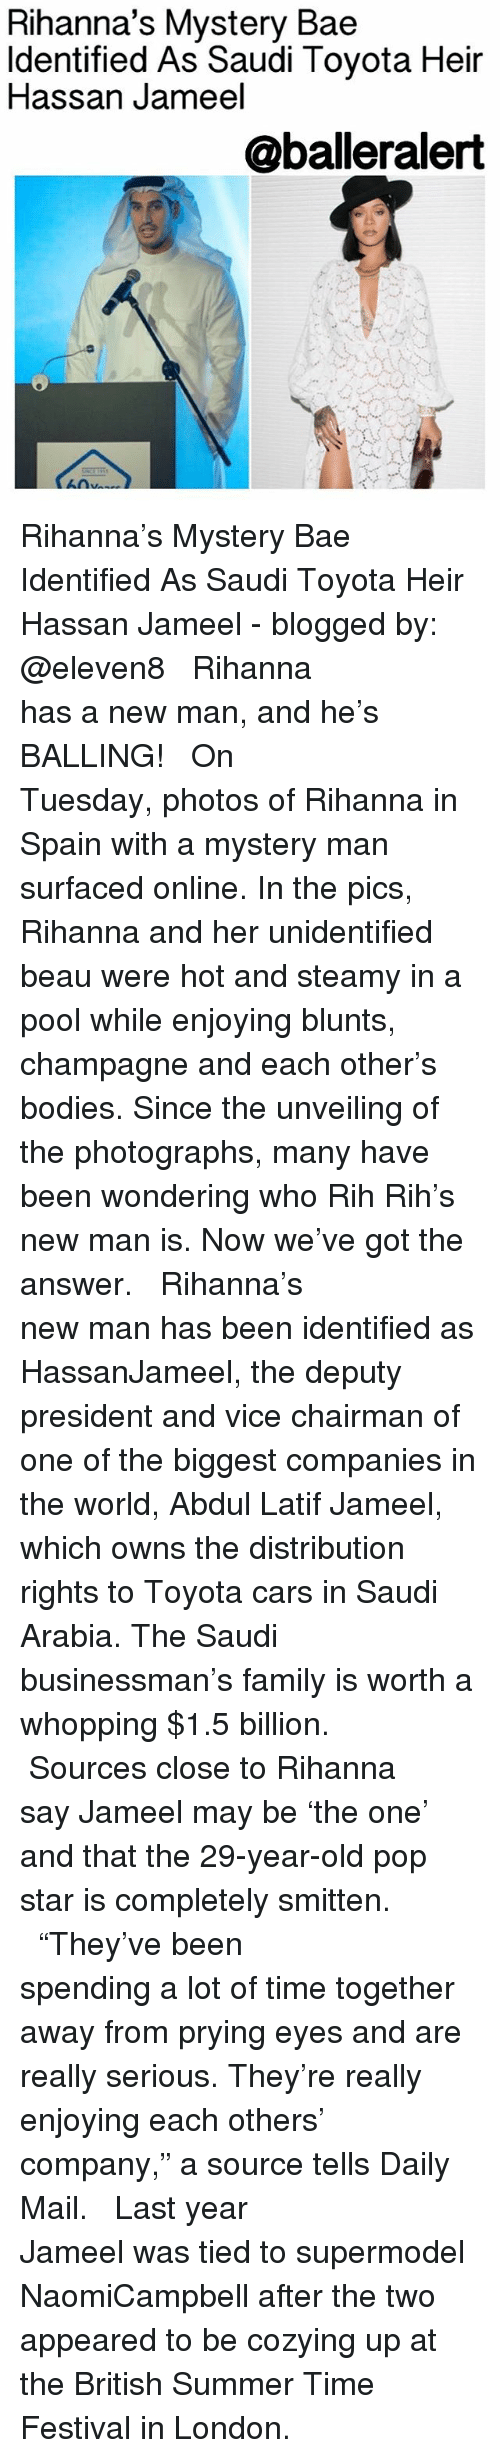 "unveiling: Rihanna's Mystery Bae  Identified As Saudi Tovota Heir  Hassan Jameel  @balleralert Rihanna's Mystery Bae Identified As Saudi Toyota Heir Hassan Jameel - blogged by: @eleven8 ⠀⠀⠀⠀⠀⠀⠀⠀⠀ ⠀⠀⠀⠀⠀⠀⠀⠀⠀ Rihanna has a new man, and he's BALLING! ⠀⠀⠀⠀⠀⠀⠀⠀⠀ ⠀⠀⠀⠀⠀⠀⠀⠀⠀ On Tuesday, photos of Rihanna in Spain with a mystery man surfaced online. In the pics, Rihanna and her unidentified beau were hot and steamy in a pool while enjoying blunts, champagne and each other's bodies. Since the unveiling of the photographs, many have been wondering who Rih Rih's new man is. Now we've got the answer. ⠀⠀⠀⠀⠀⠀⠀⠀⠀ ⠀⠀⠀⠀⠀⠀⠀⠀⠀ Rihanna's new man has been identified as HassanJameel, the deputy president and vice chairman of one of the biggest companies in the world, Abdul Latif Jameel, which owns the distribution rights to Toyota cars in Saudi Arabia. The Saudi businessman's family is worth a whopping $1.5 billion. ⠀⠀⠀⠀⠀⠀⠀⠀⠀ ⠀⠀⠀⠀⠀⠀⠀⠀⠀ Sources close to Rihanna say Jameel may be 'the one' and that the 29-year-old pop star is completely smitten. ⠀⠀⠀⠀⠀⠀⠀⠀⠀ ⠀⠀⠀⠀⠀⠀⠀⠀⠀ ""They've been spending a lot of time together away from prying eyes and are really serious. They're really enjoying each others' company,"" a source tells Daily Mail. ⠀⠀⠀⠀⠀⠀⠀⠀⠀ ⠀⠀⠀⠀⠀⠀⠀⠀⠀ Last year Jameel was tied to supermodel NaomiCampbell after the two appeared to be cozying up at the British Summer Time Festival in London."